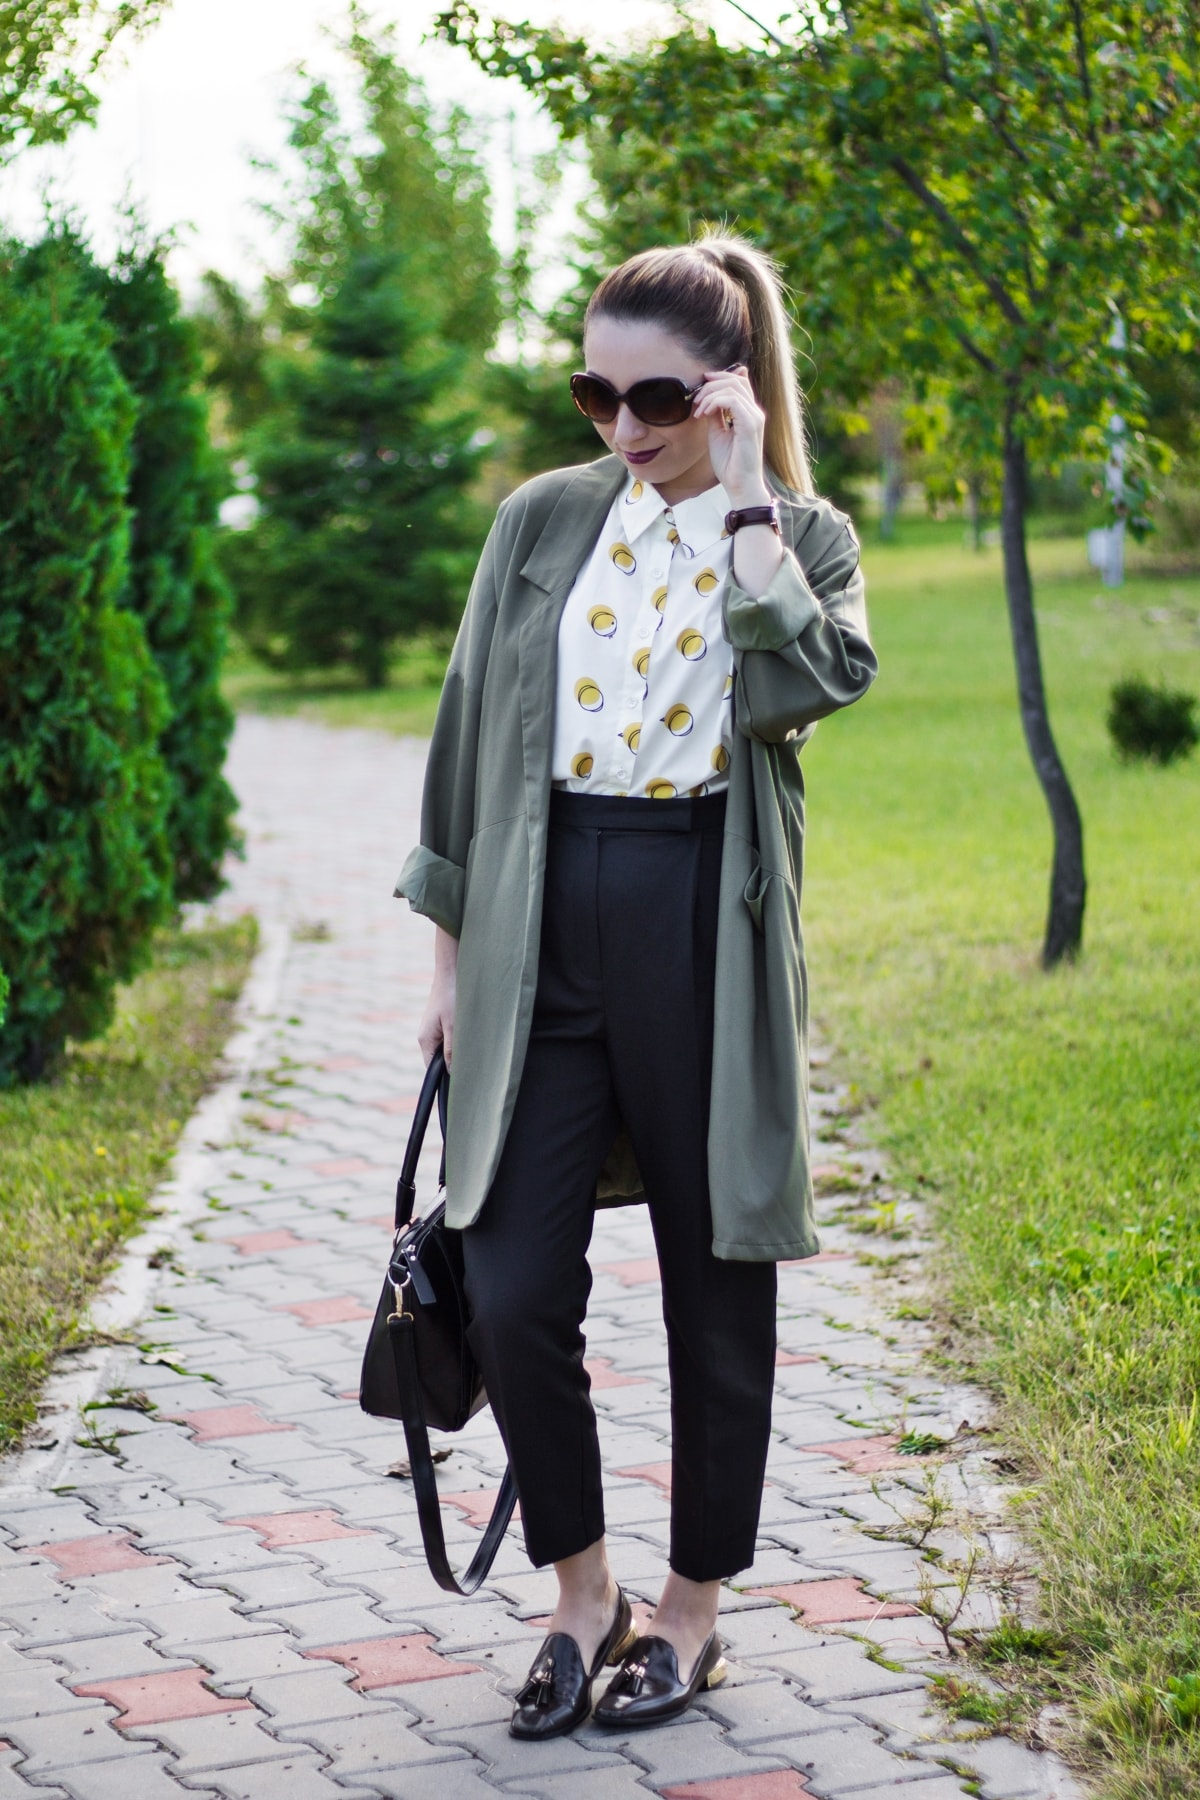 street style, 50s fashion influences, ideas, outfit, look, street style, high waisted black pants, white and yellow polka shirt, woman, military trench coat, olive moccasin, black bag, andreea ristea